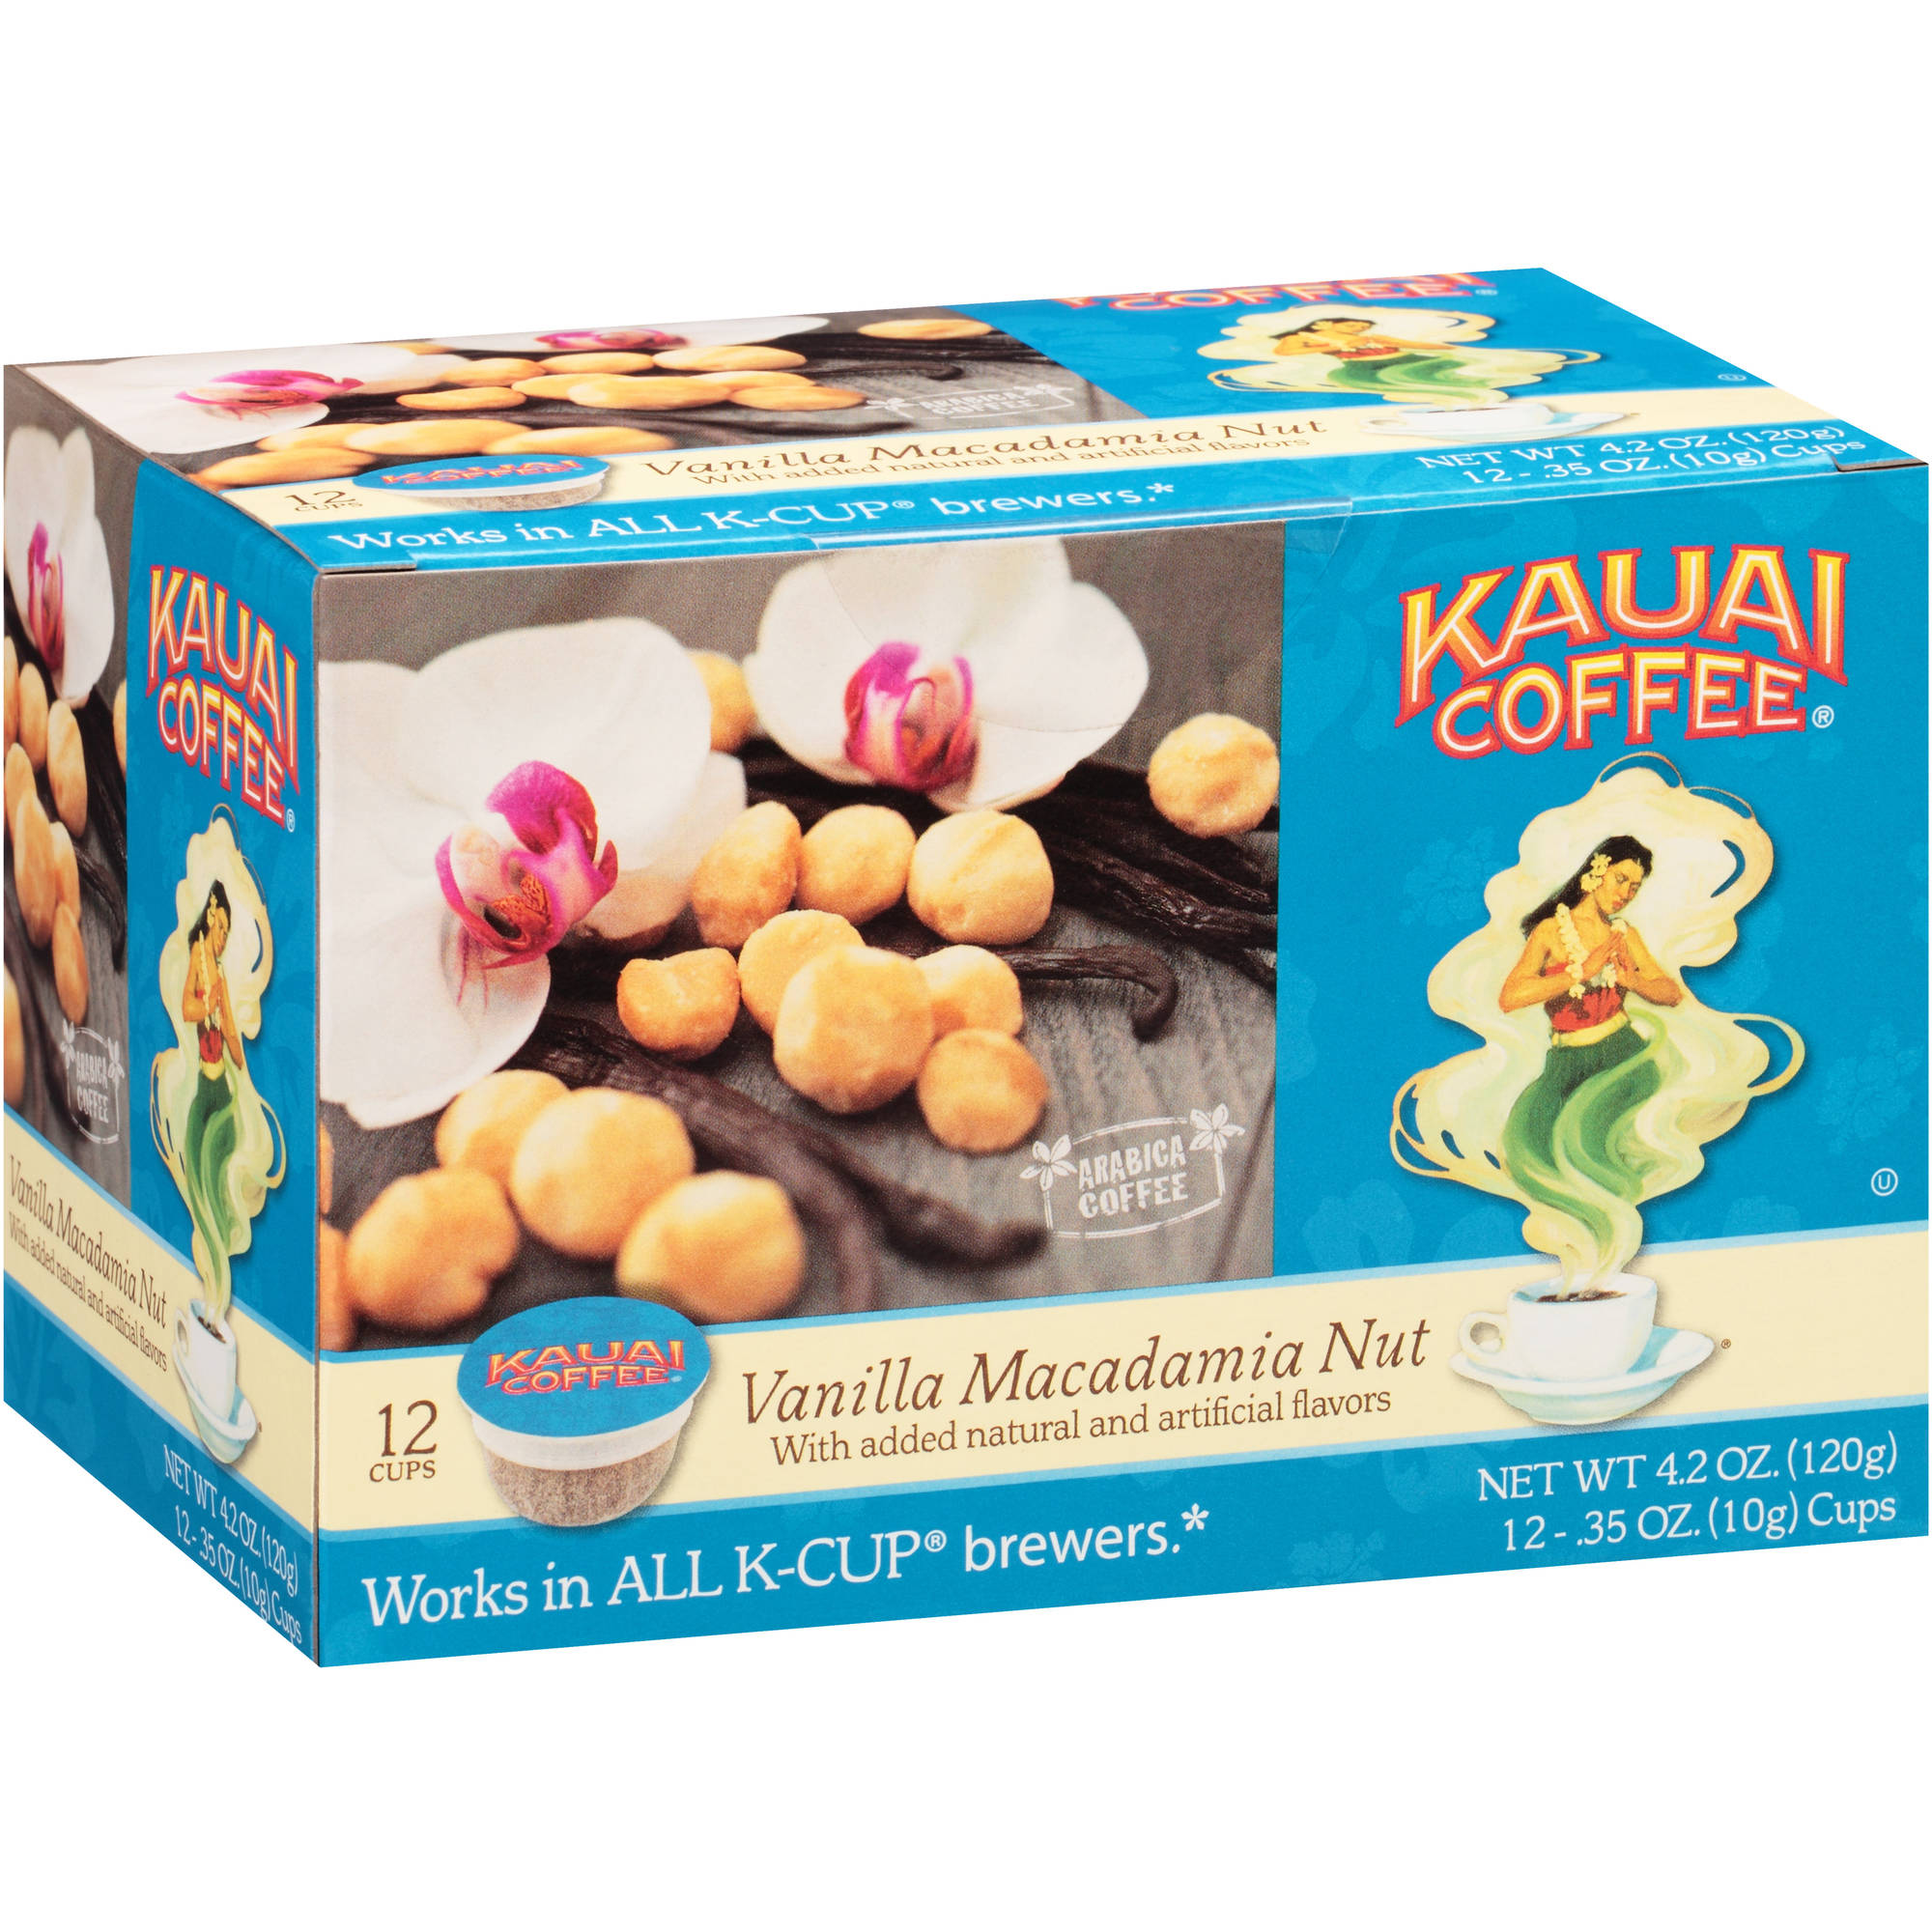 Kuai Coffee Vanilla Macadamia Nut Coffee Single Serve Cups